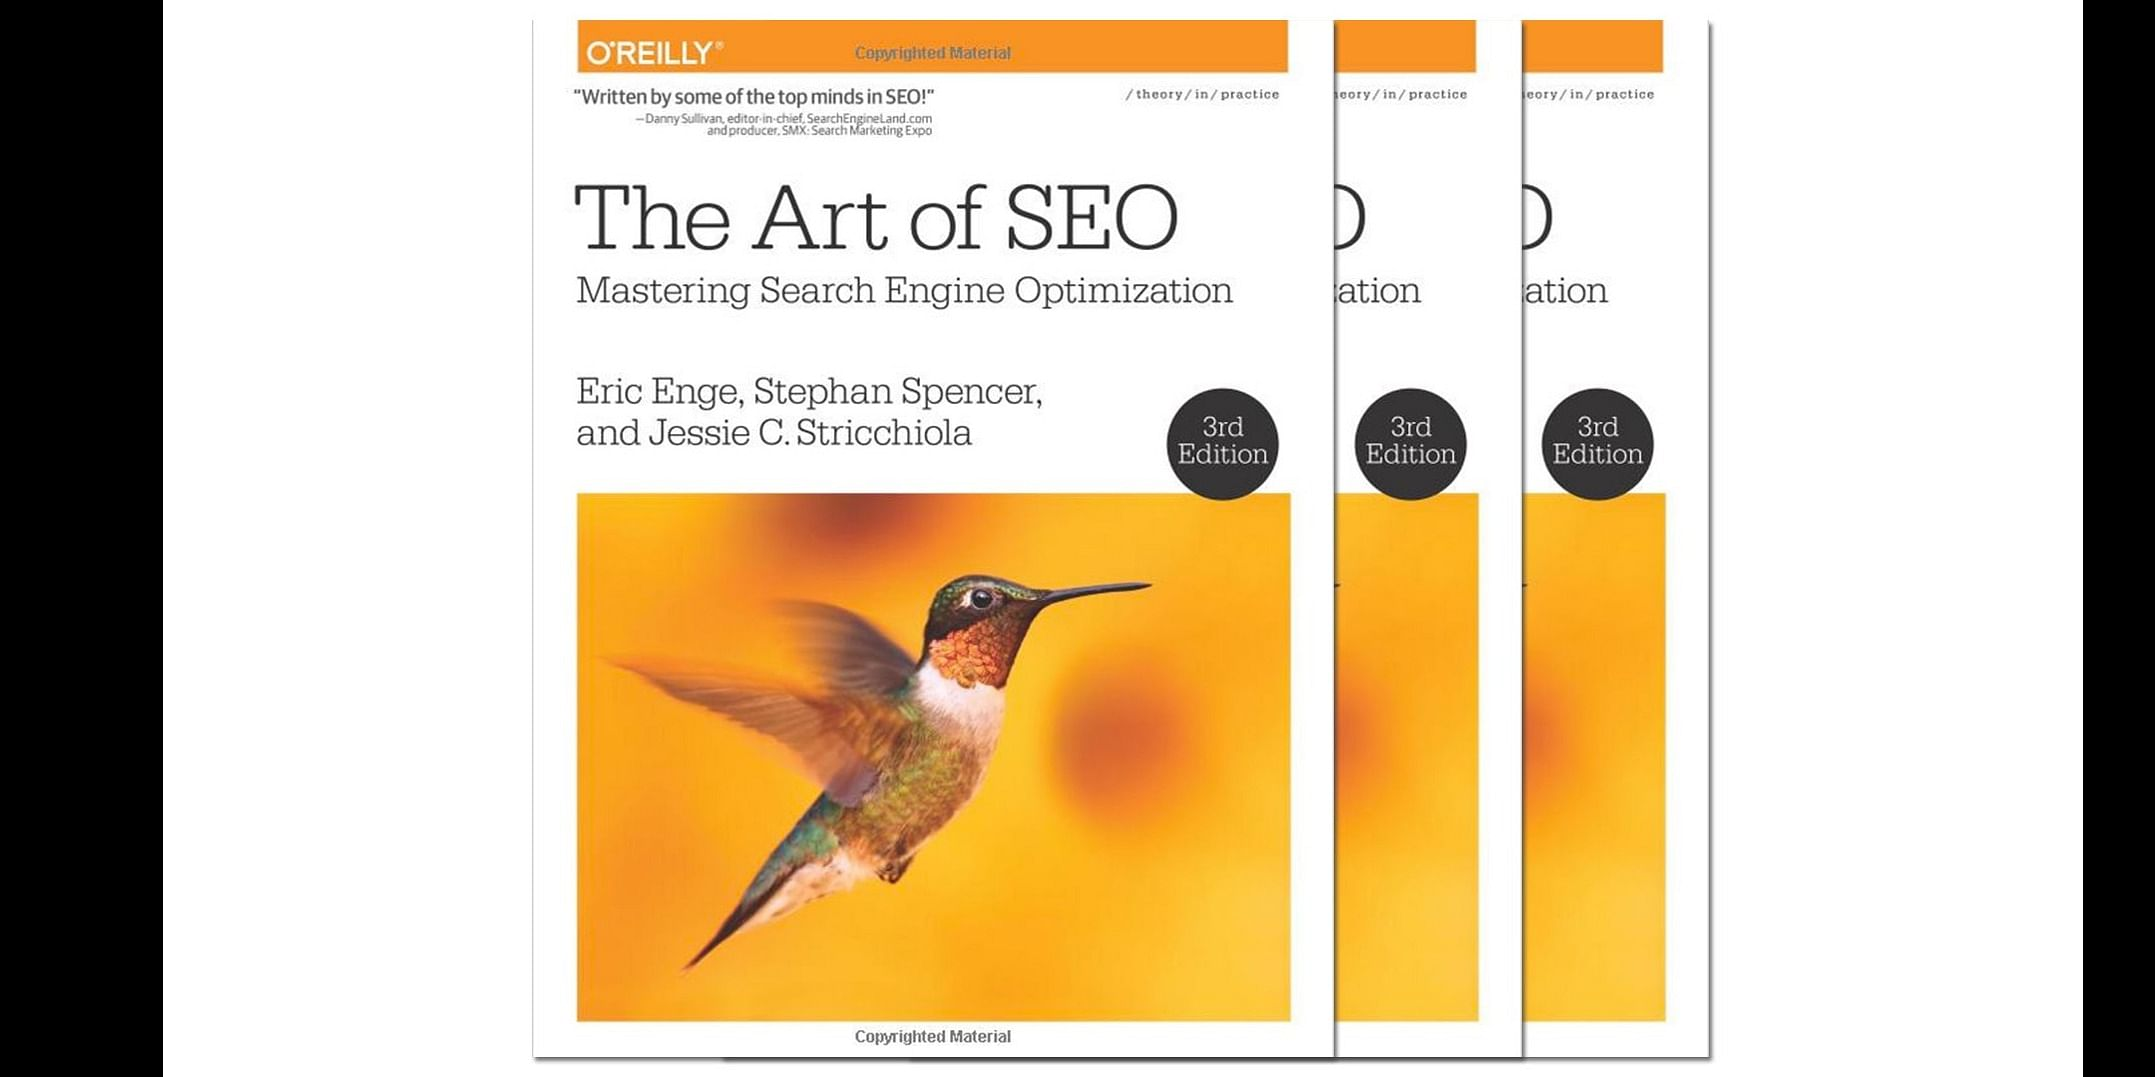 Art of SEO 3rd Edition by Eric Enge